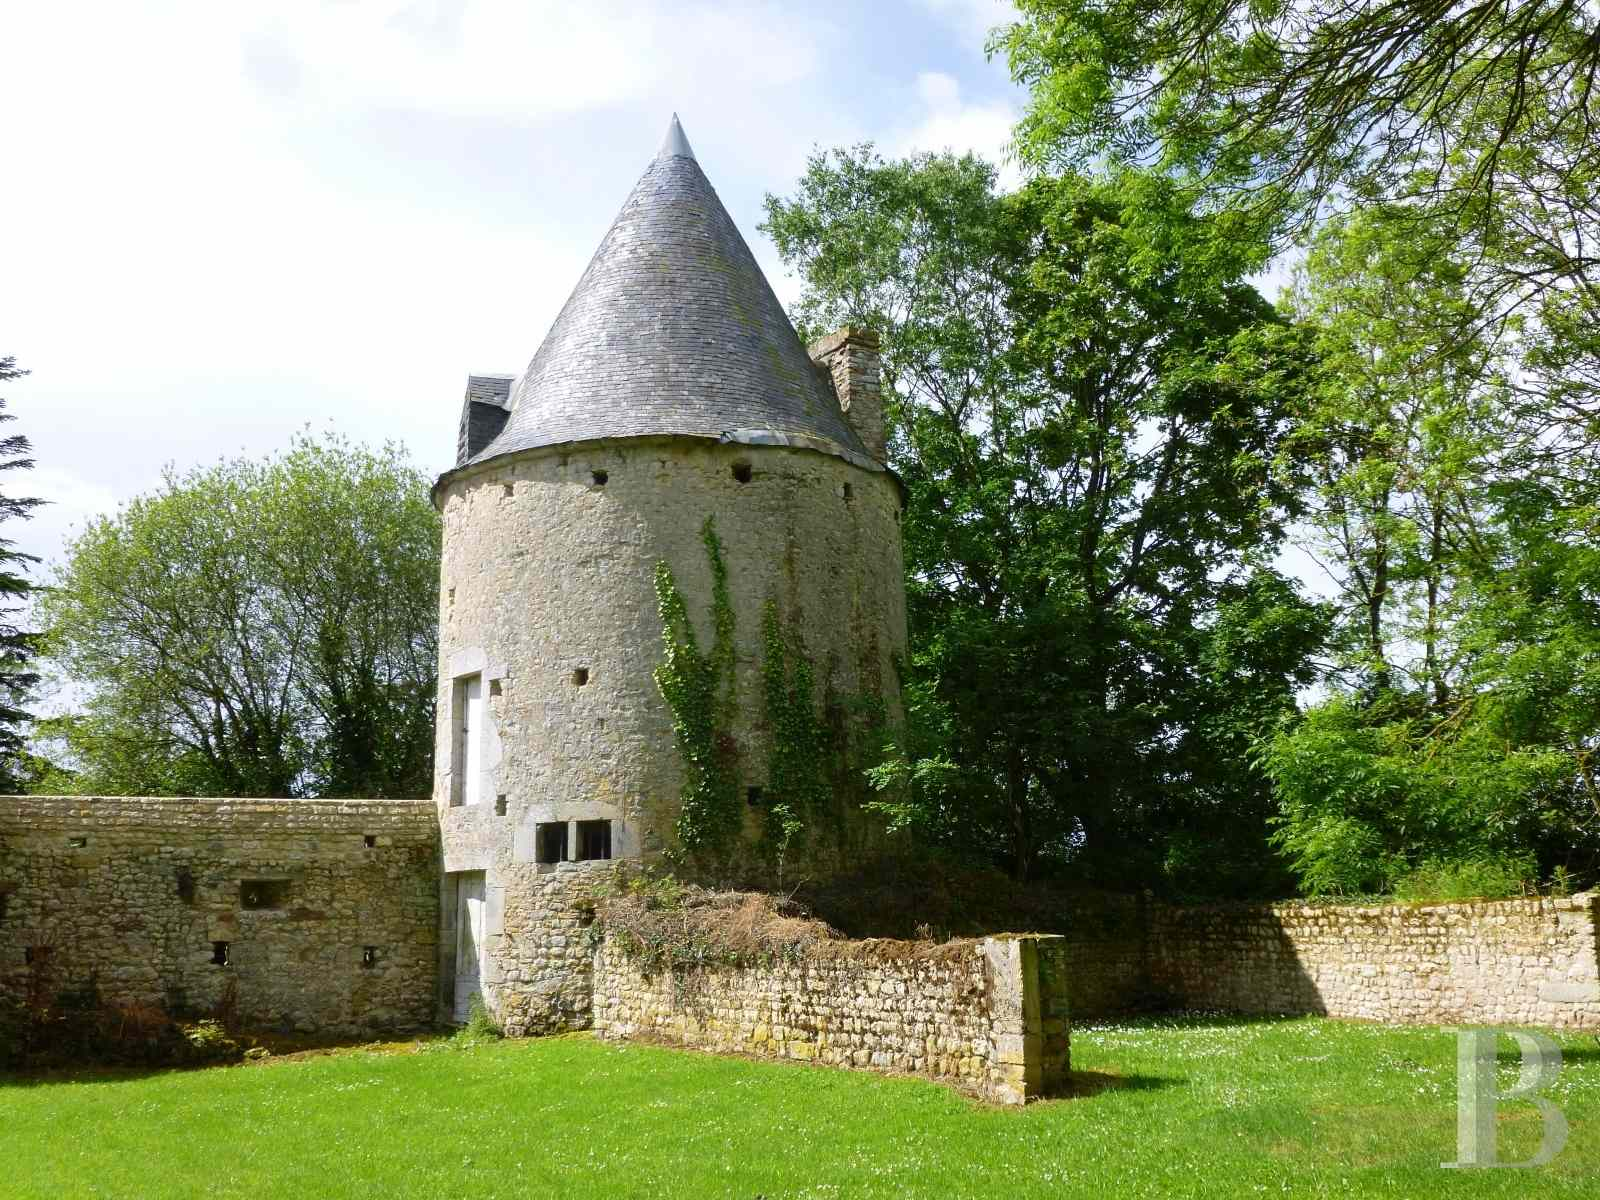 chateaux for sale France lower normandy bessin area - 17 zoom